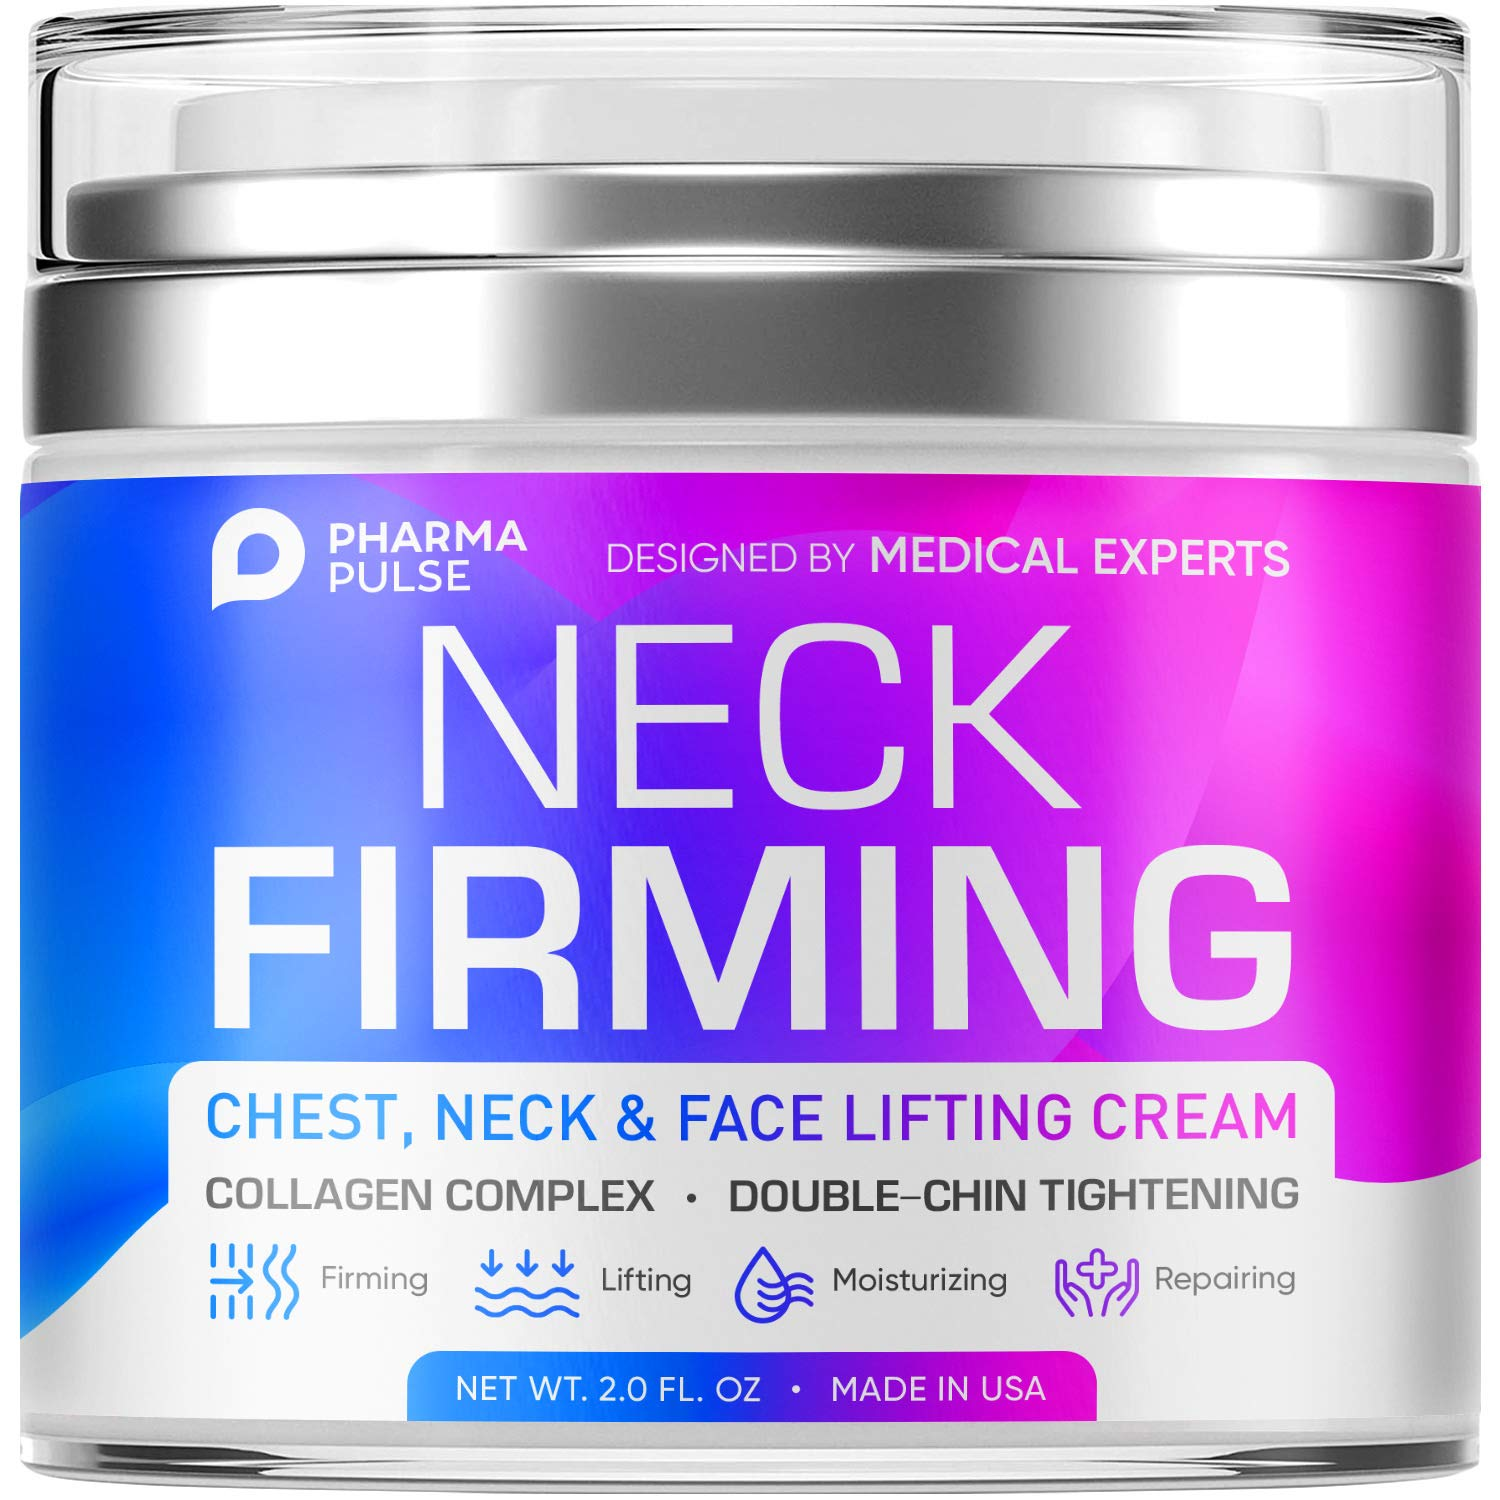 Neck Firming Cream, Neck Anti-Wrinkle Cream, Anti Aging Moisturizer for Neck & Décolleté, Neck Firming Cream for Double Chin and Sagging Skin, Neck, Chest & Décolleté Skin Care for Men & Women : Beauty & Personal Care